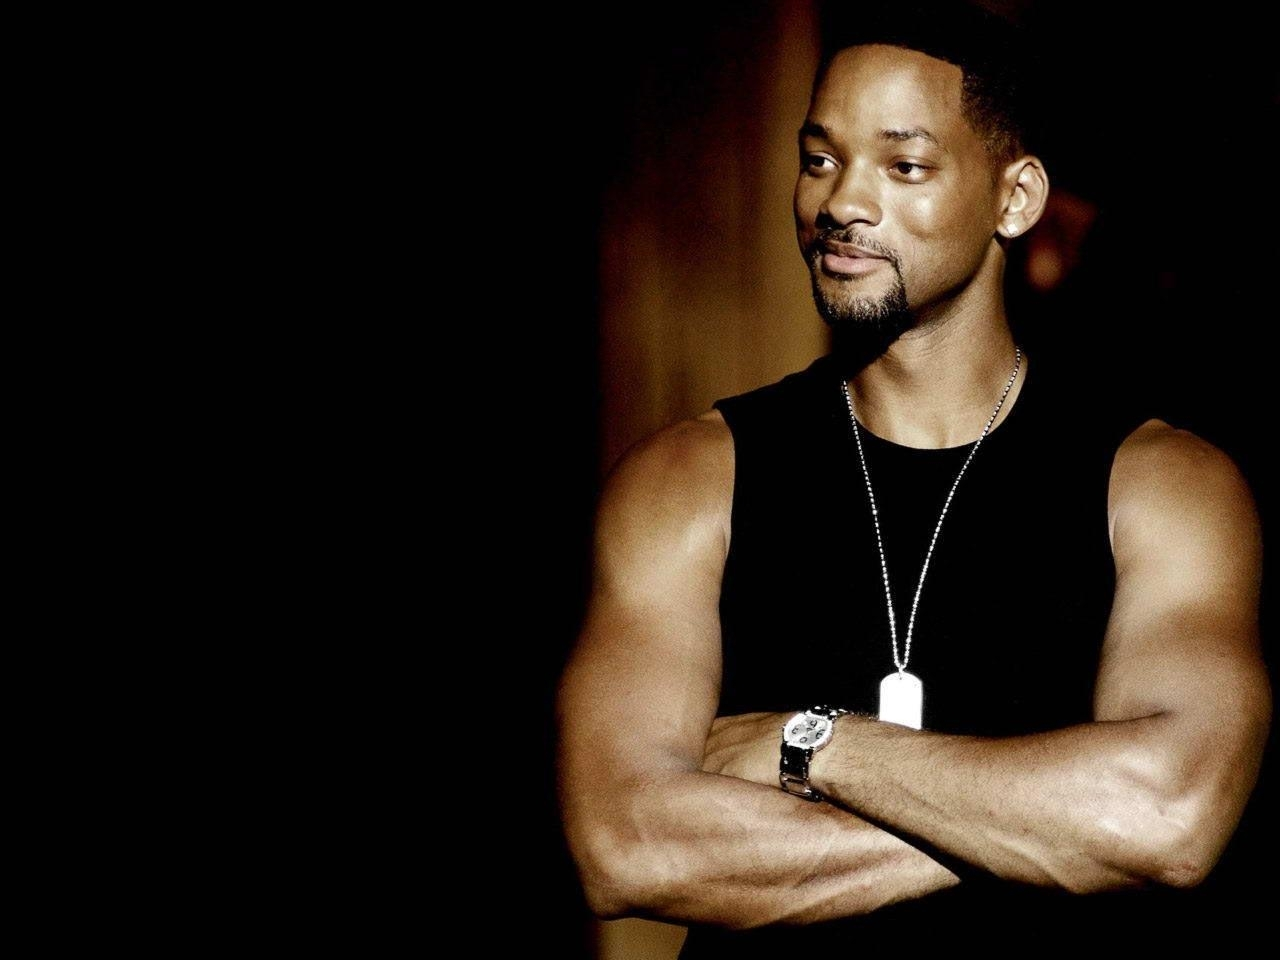 42339 download wallpaper Cinema, People, Men, Will Smith screensavers and pictures for free